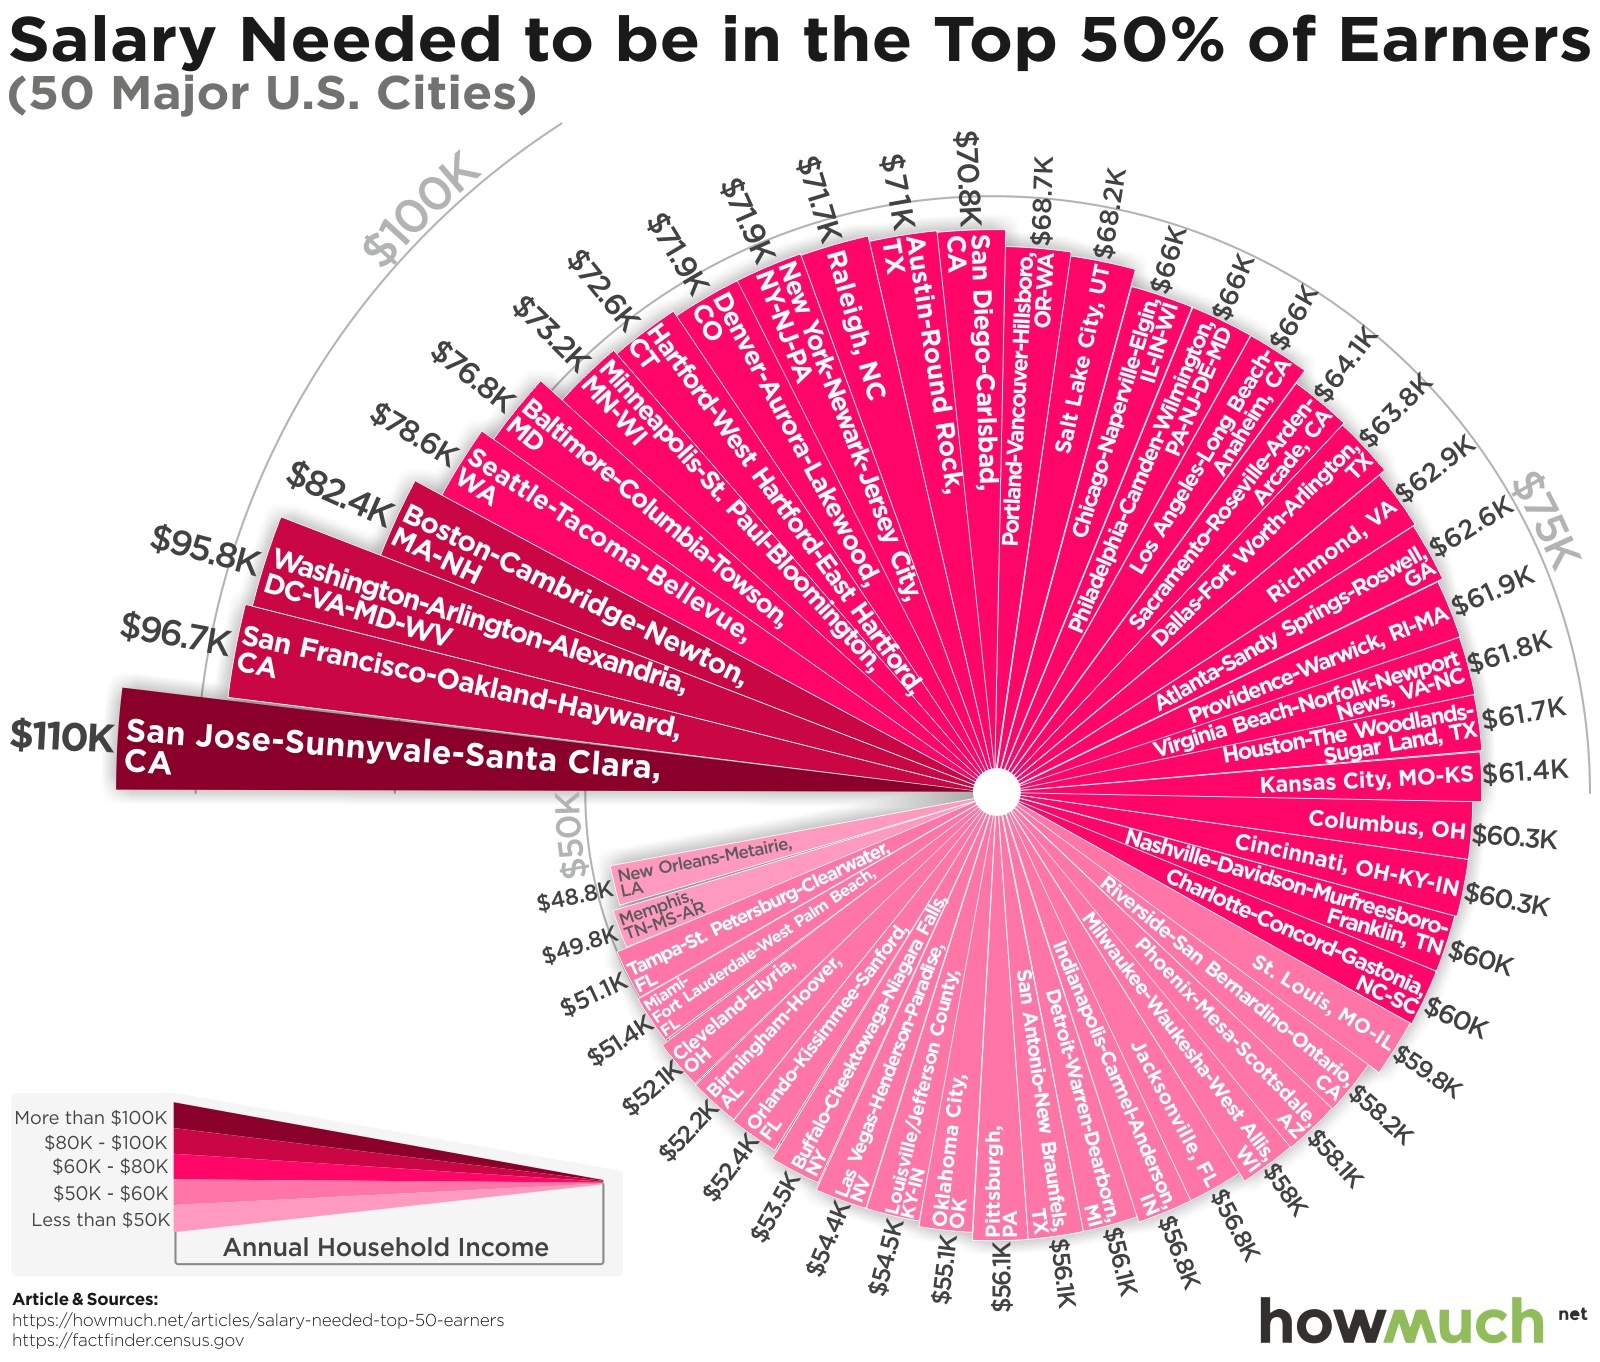 Are you rich? Salary needed to reach the top 50%.